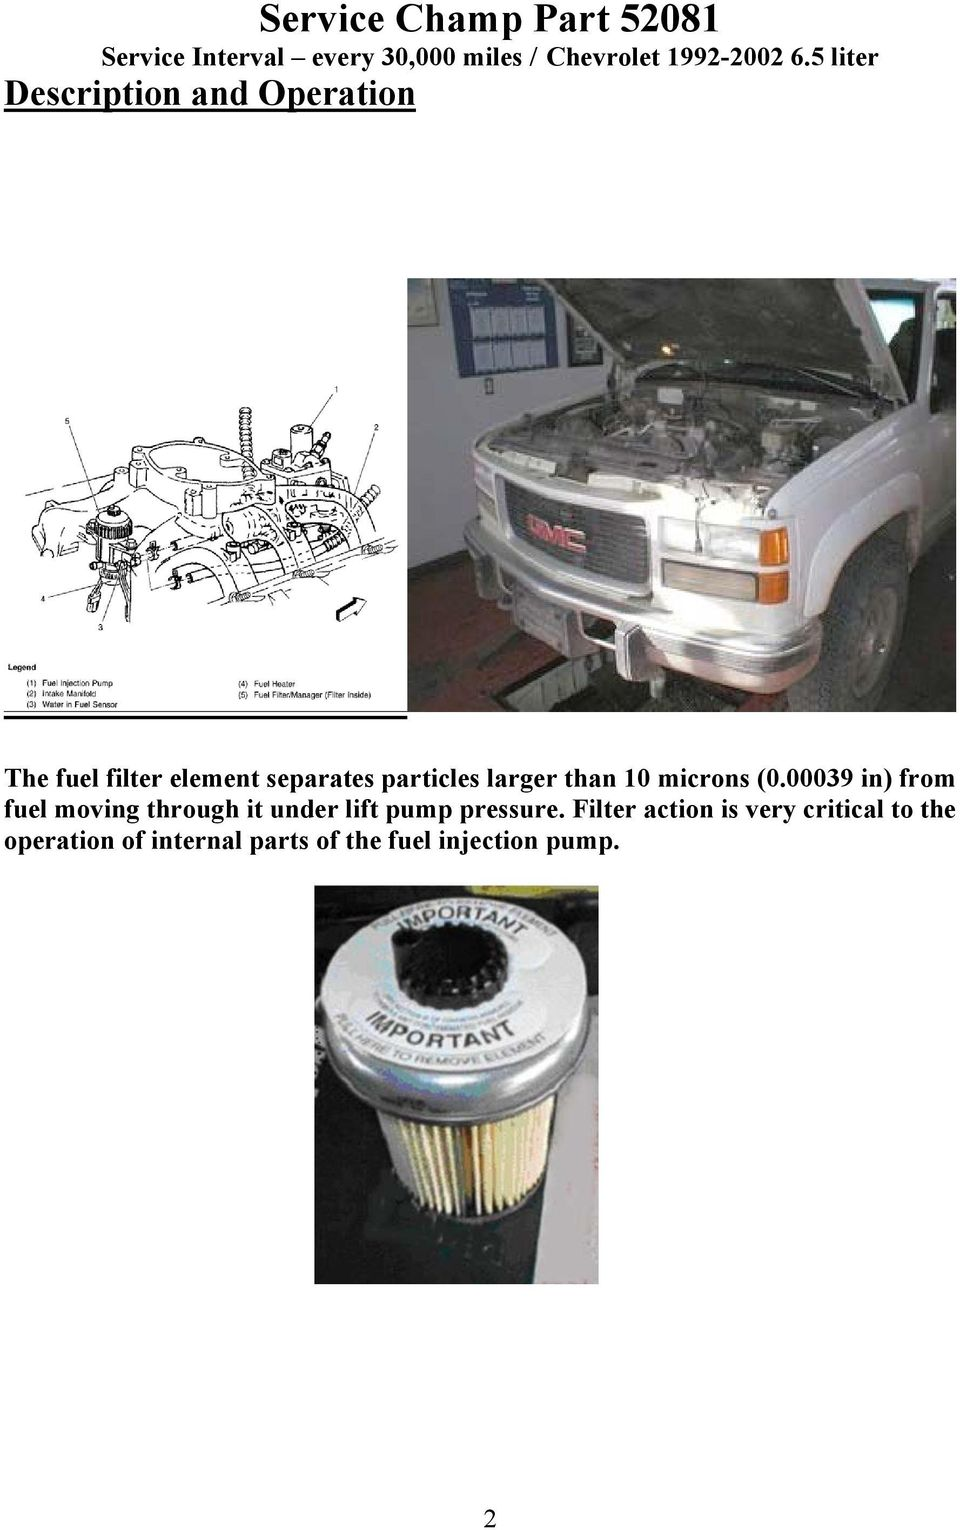 Pdf 2002 Mustang Fuel Filter Location Than 10 Microns 000039 In From Moving Through It Under Lift Pump Pressure